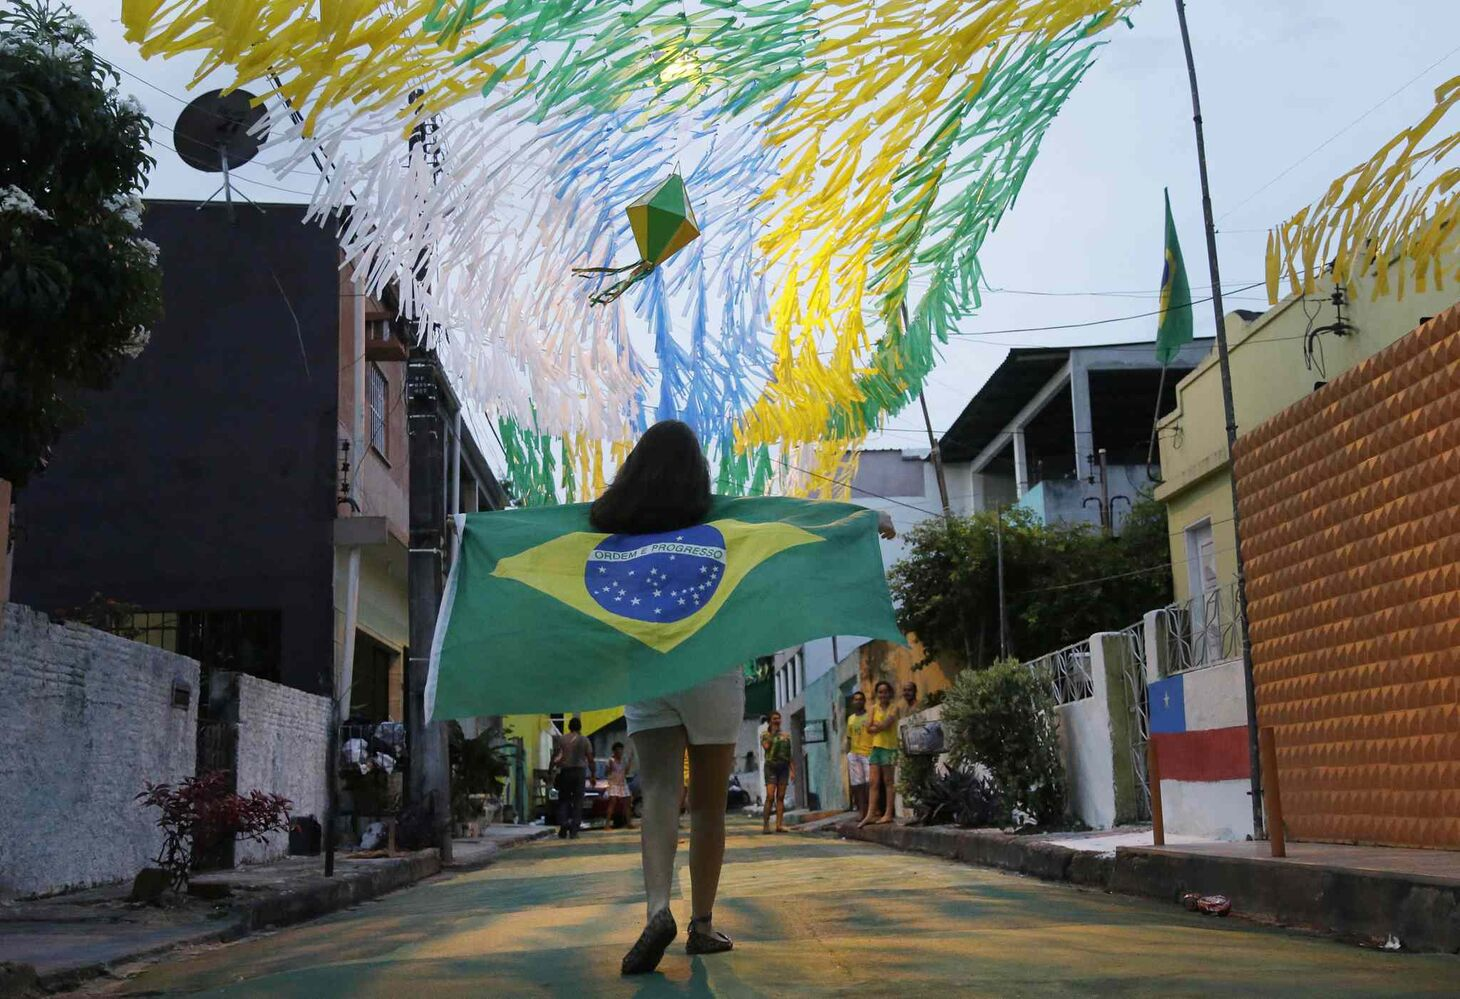 A girl walks down an alleyway holding a Brazilian flag after the country's winning opening match over Croatia during the 2014 soccer World Cup in Manaus, Brazil. (Marcio Jose Sanchez / The Associated Press)